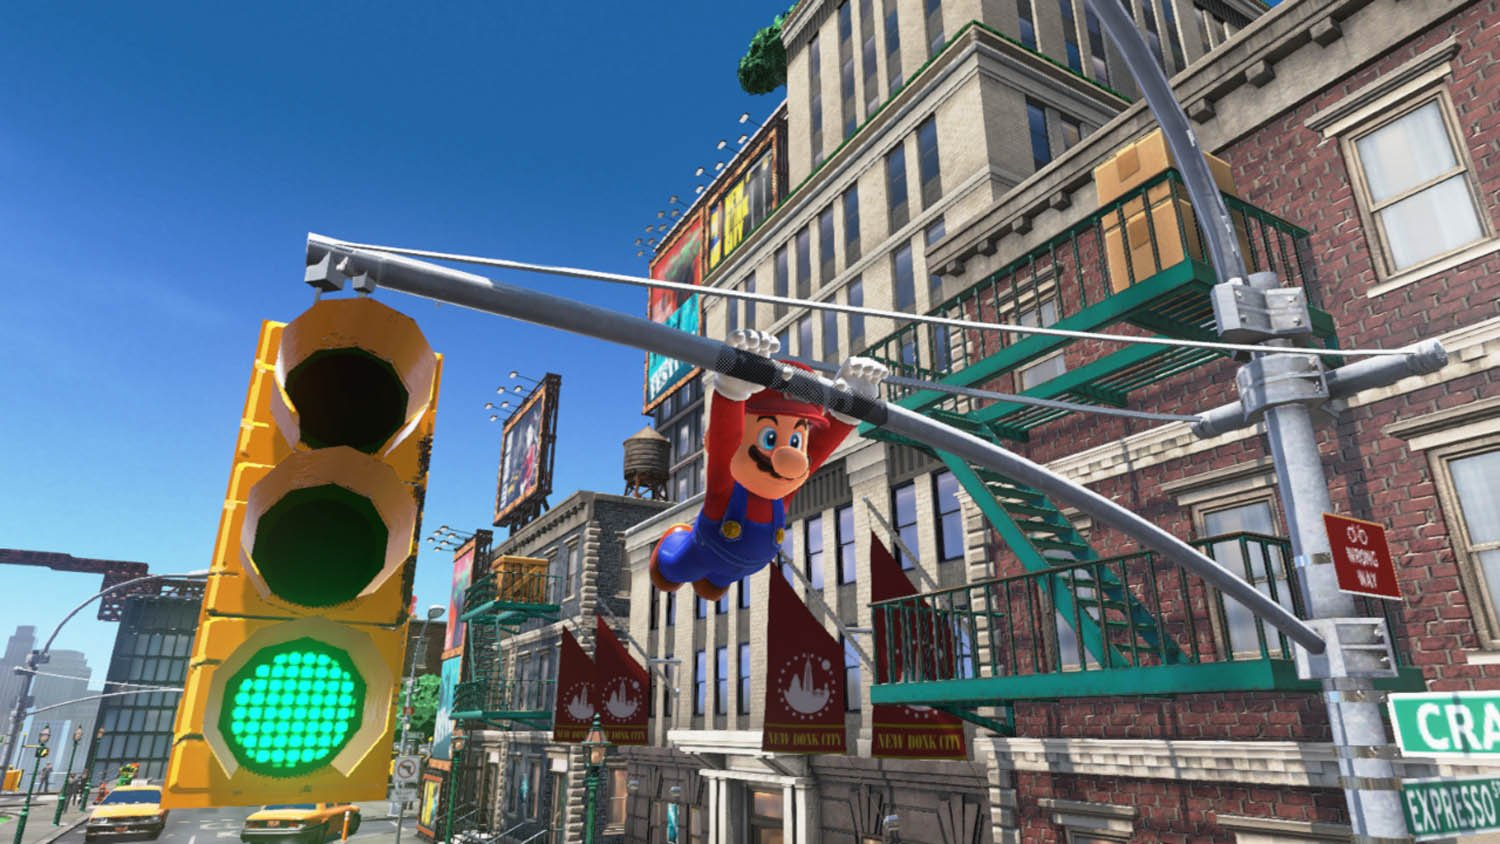 Super Mario Odyssey Will Be The Fifth Game To Support Switch Video Capture